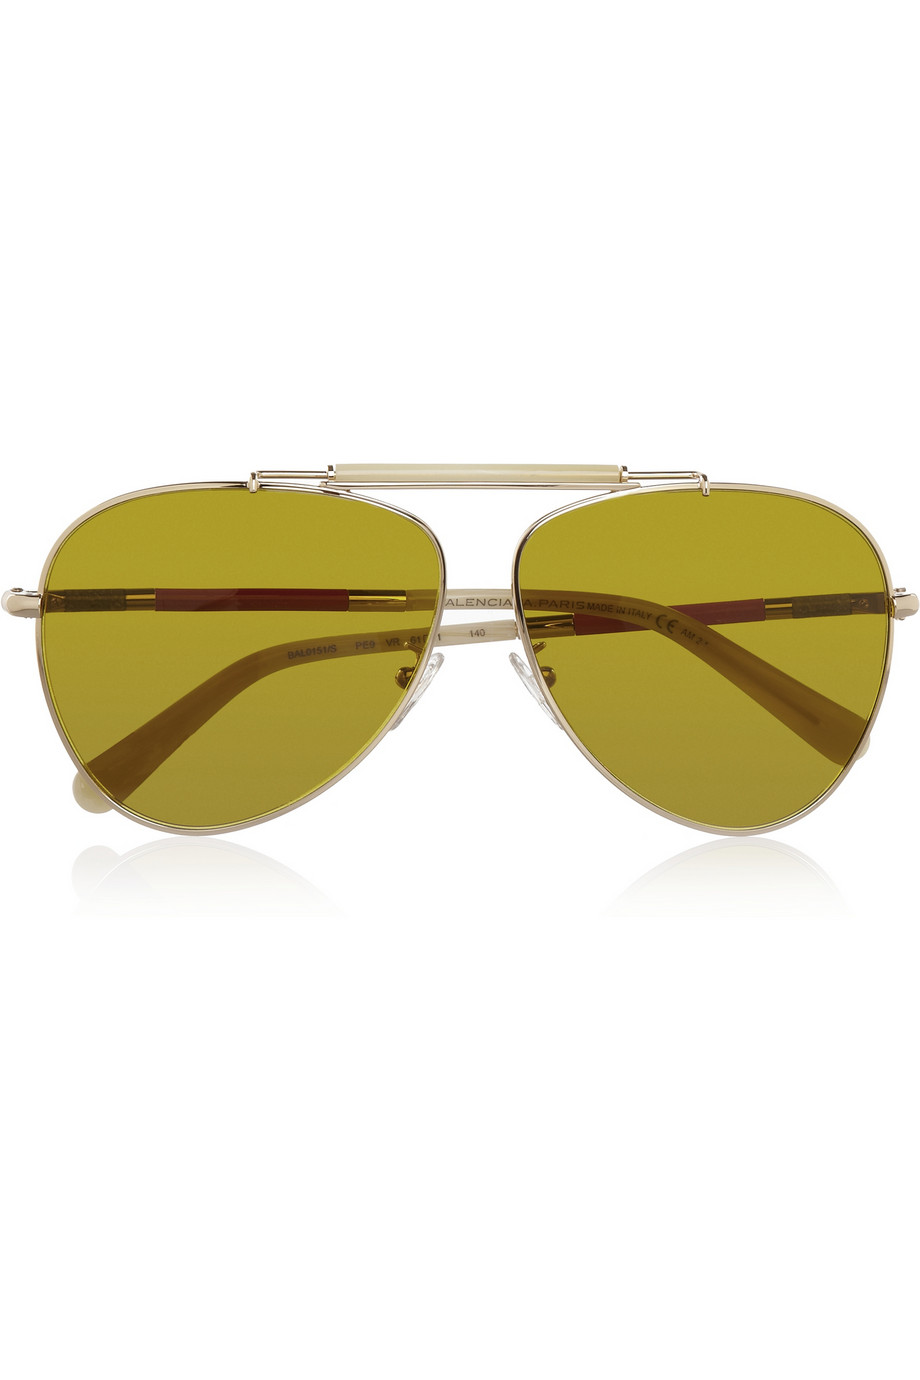 Aviator-Style Metal Sunglasses Balenciaga Low Price Fee Shipping Wiki Online Free Shipping Cheap Price HLRc5